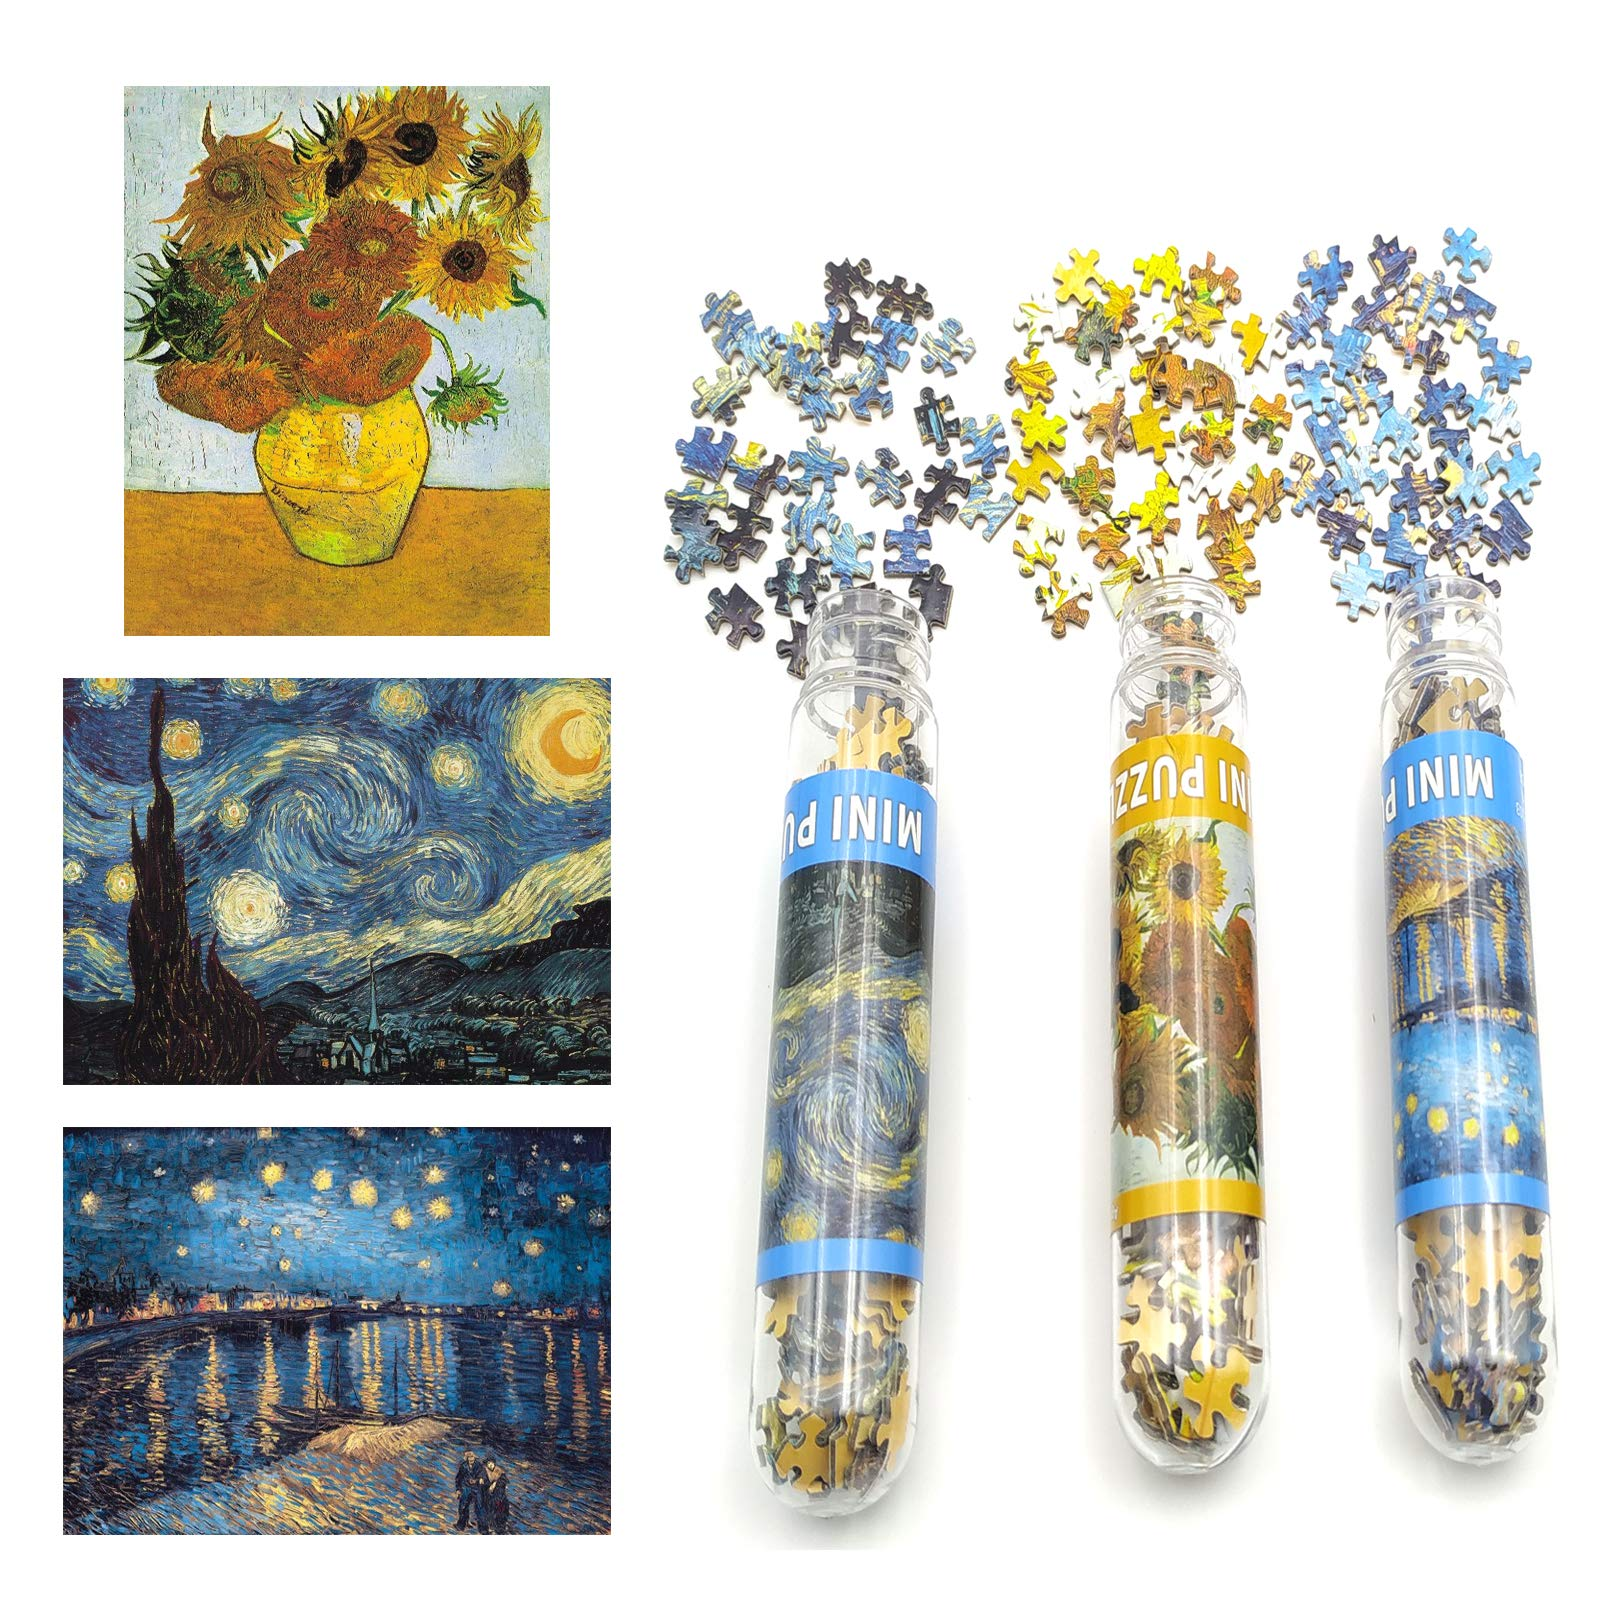 Small Jigsaw Puzzles for Adults Challenging Puzzle Small Difficult Puzzles Mini Jigsaw Puzzles for Adults 150 Pieces Small Jigsaw Puzzle Starry Night Rhone River Sunflower 6 x 4 Inches, 3 Pack